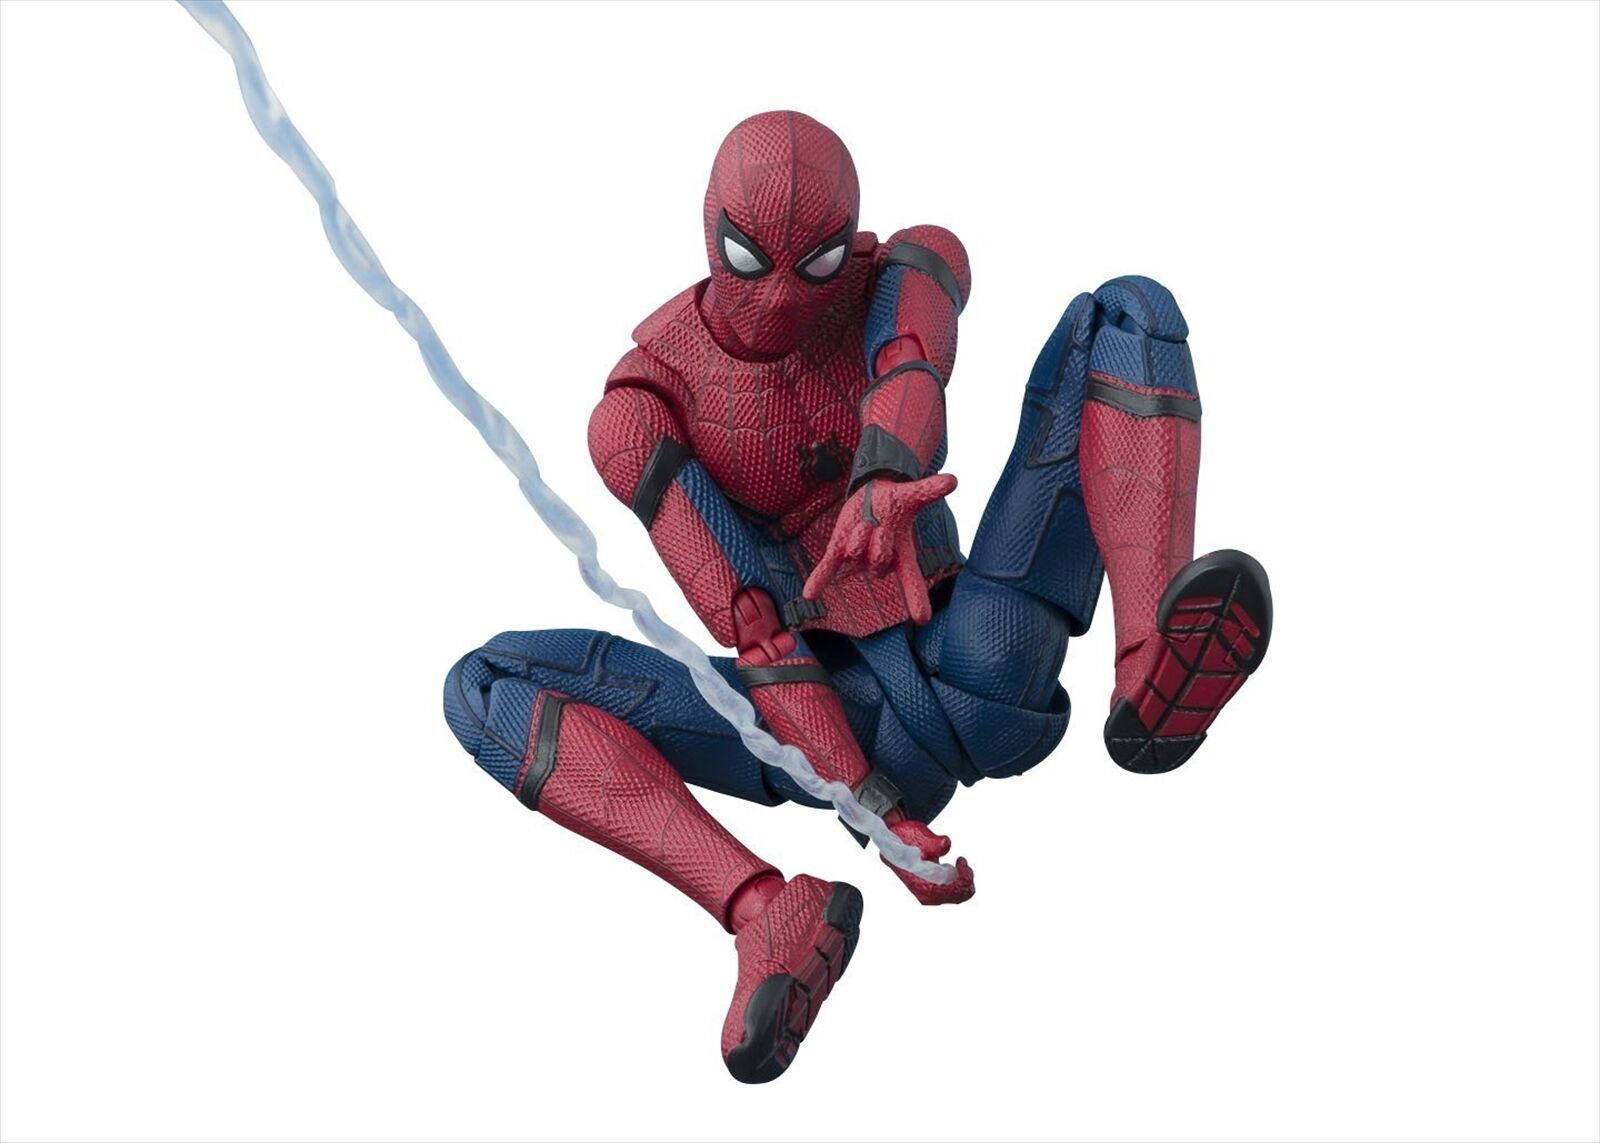 Bandai Bandai Bandai S.H. Figuarts Spider-Man (Homecoming) 145 mm Action Figure fd6f03